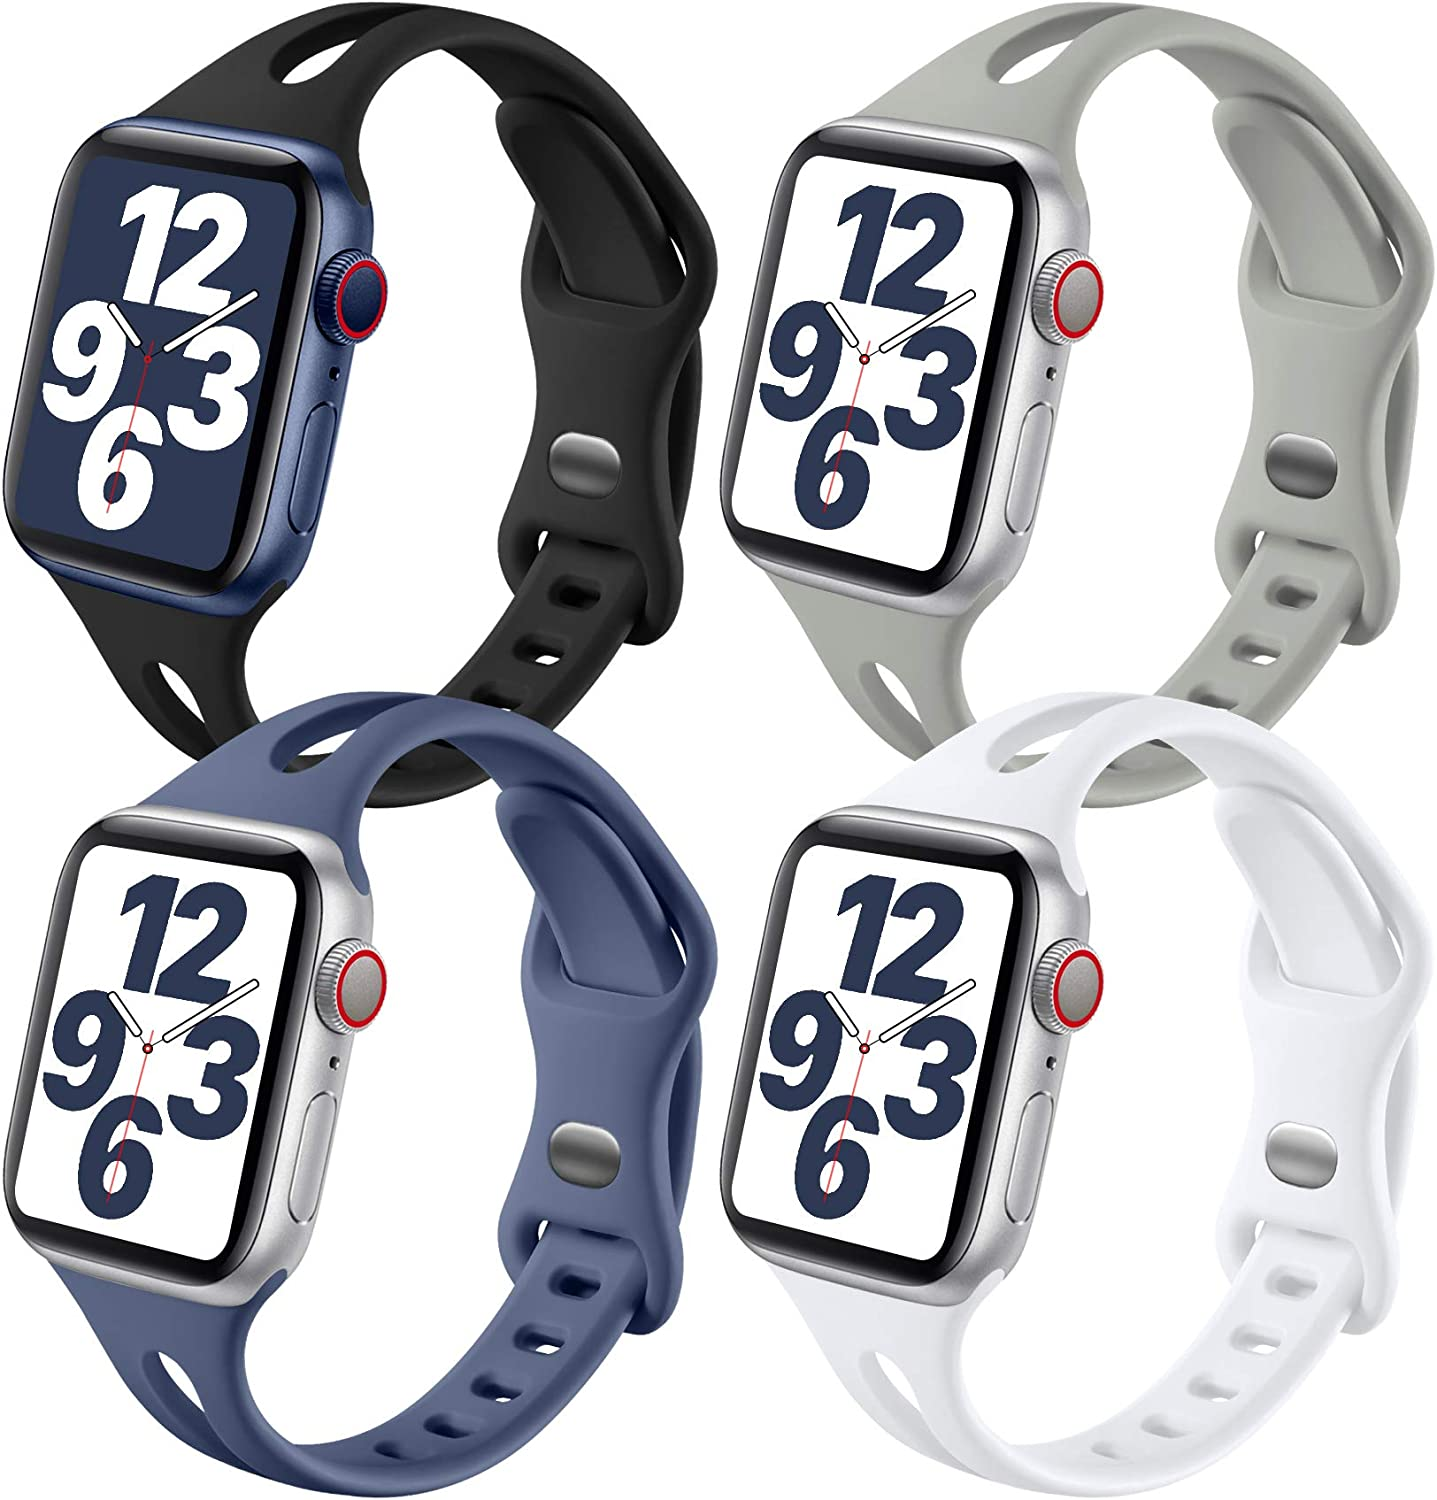 Getino Band Compatible with Apple Watch 40mm 38mm for Women Men, Soft Silicone Stylish Breathable Slim Sport Bands for iWatch SE & Series 6 5 4 3 2 1, 4 Pack, Black, White, Pebble Gray, Blue Gray